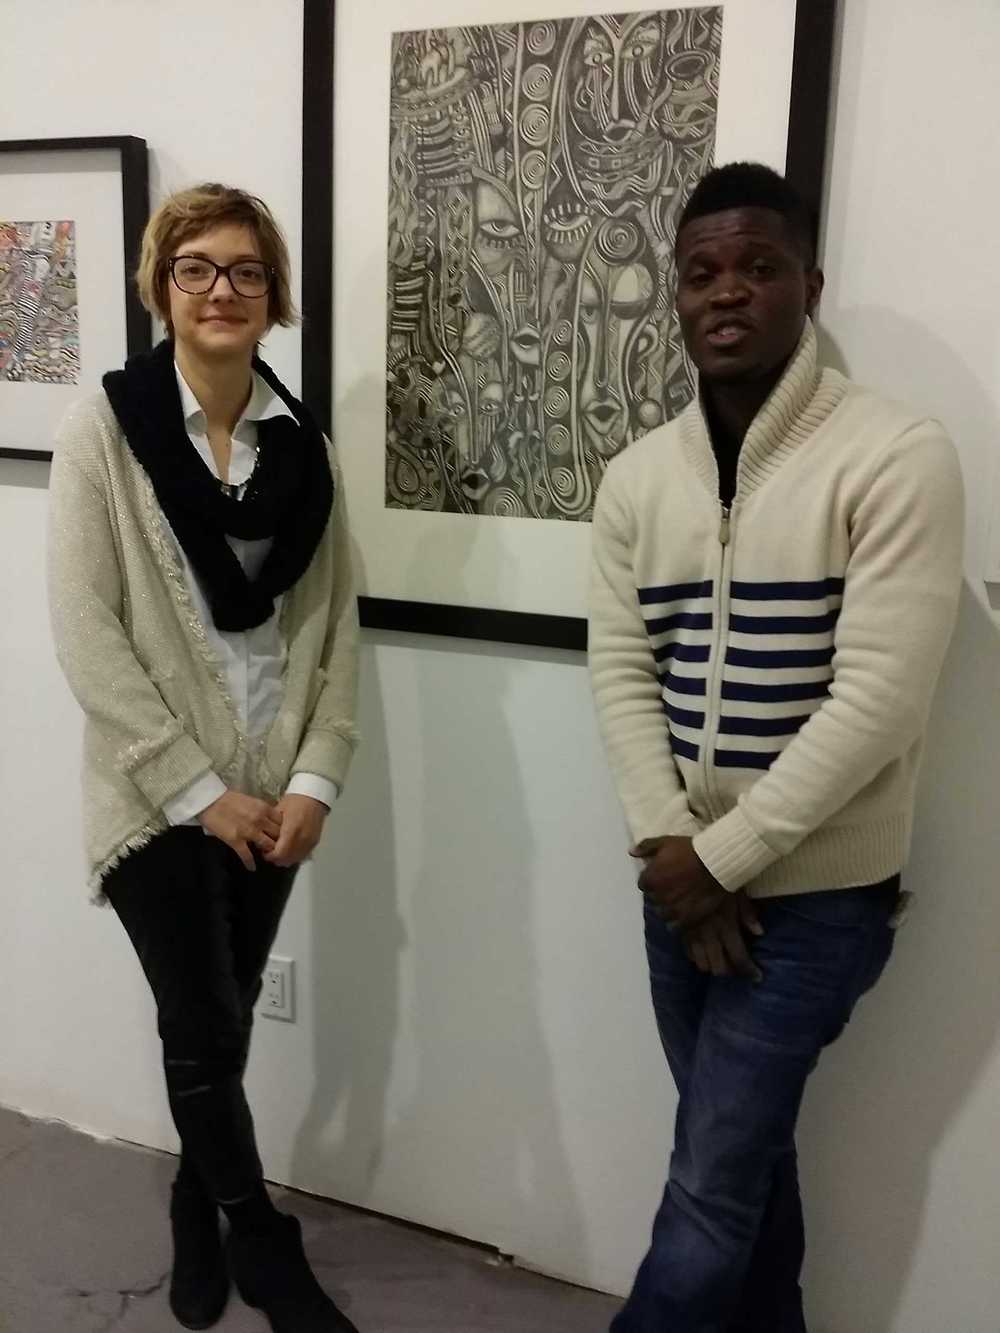 Laolu Senbanjo with Amos Eno Gallery Director, Hilary R. Whitham after hanging up  Masquerade.